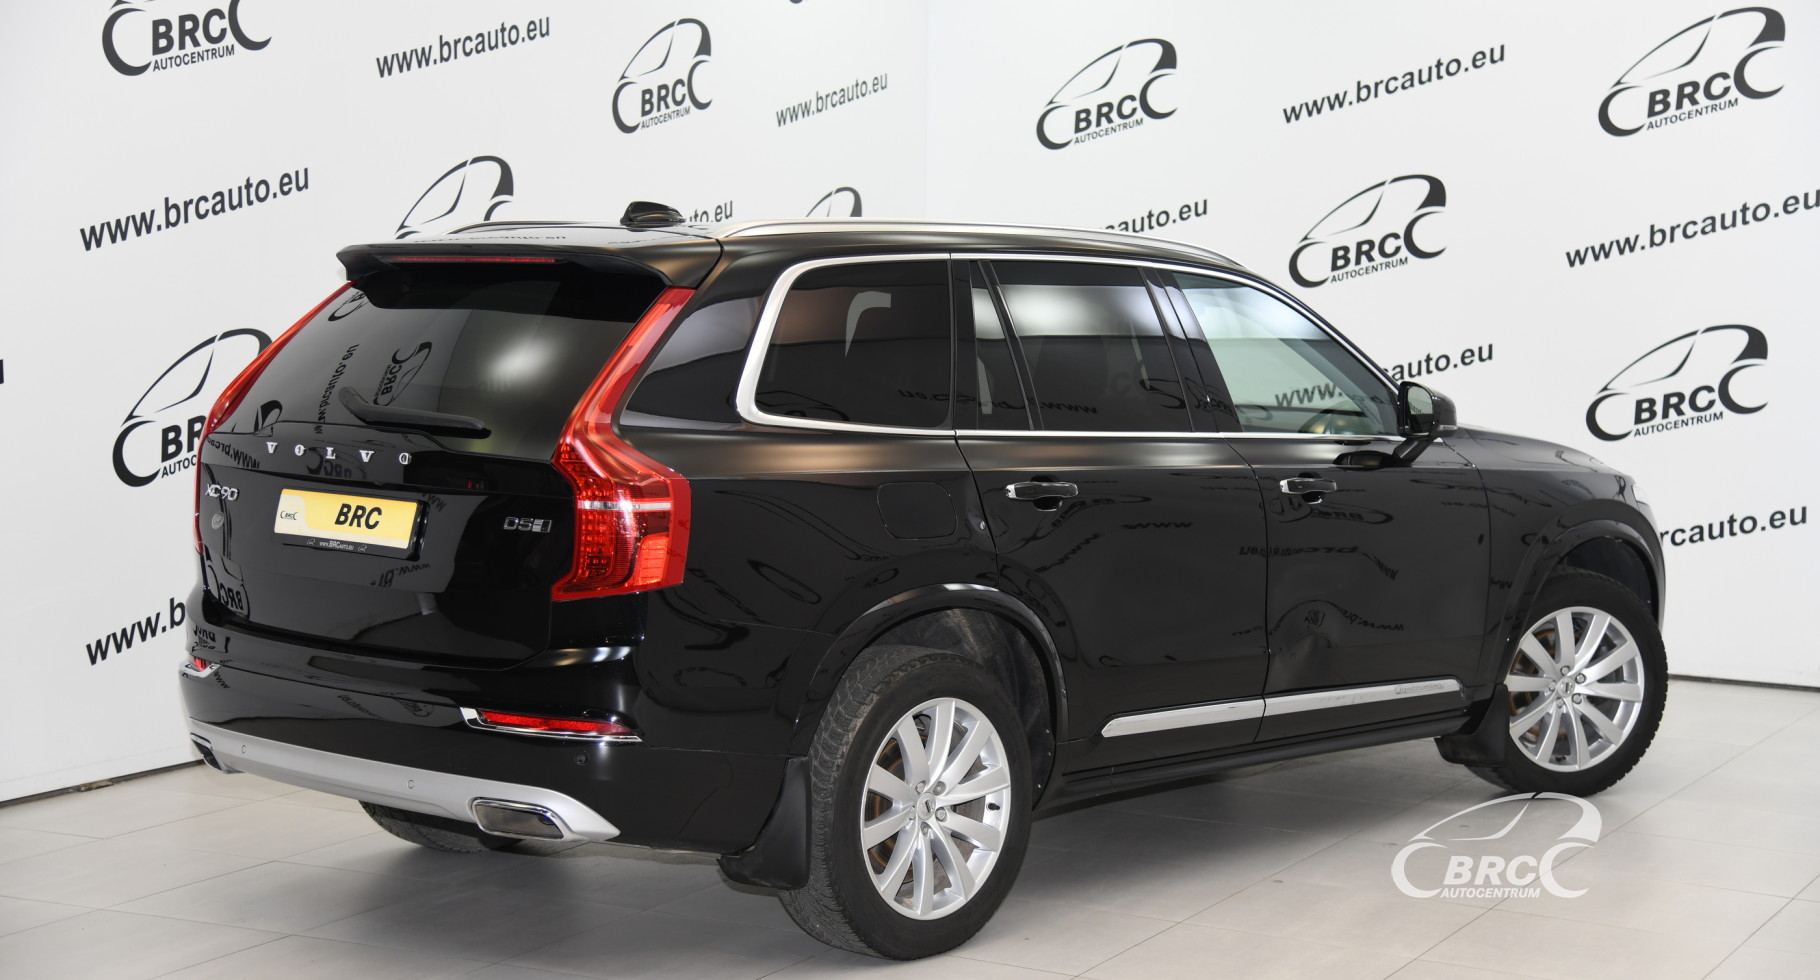 Volvo XC 90 2.0 D5 AWD Inscription Automatas